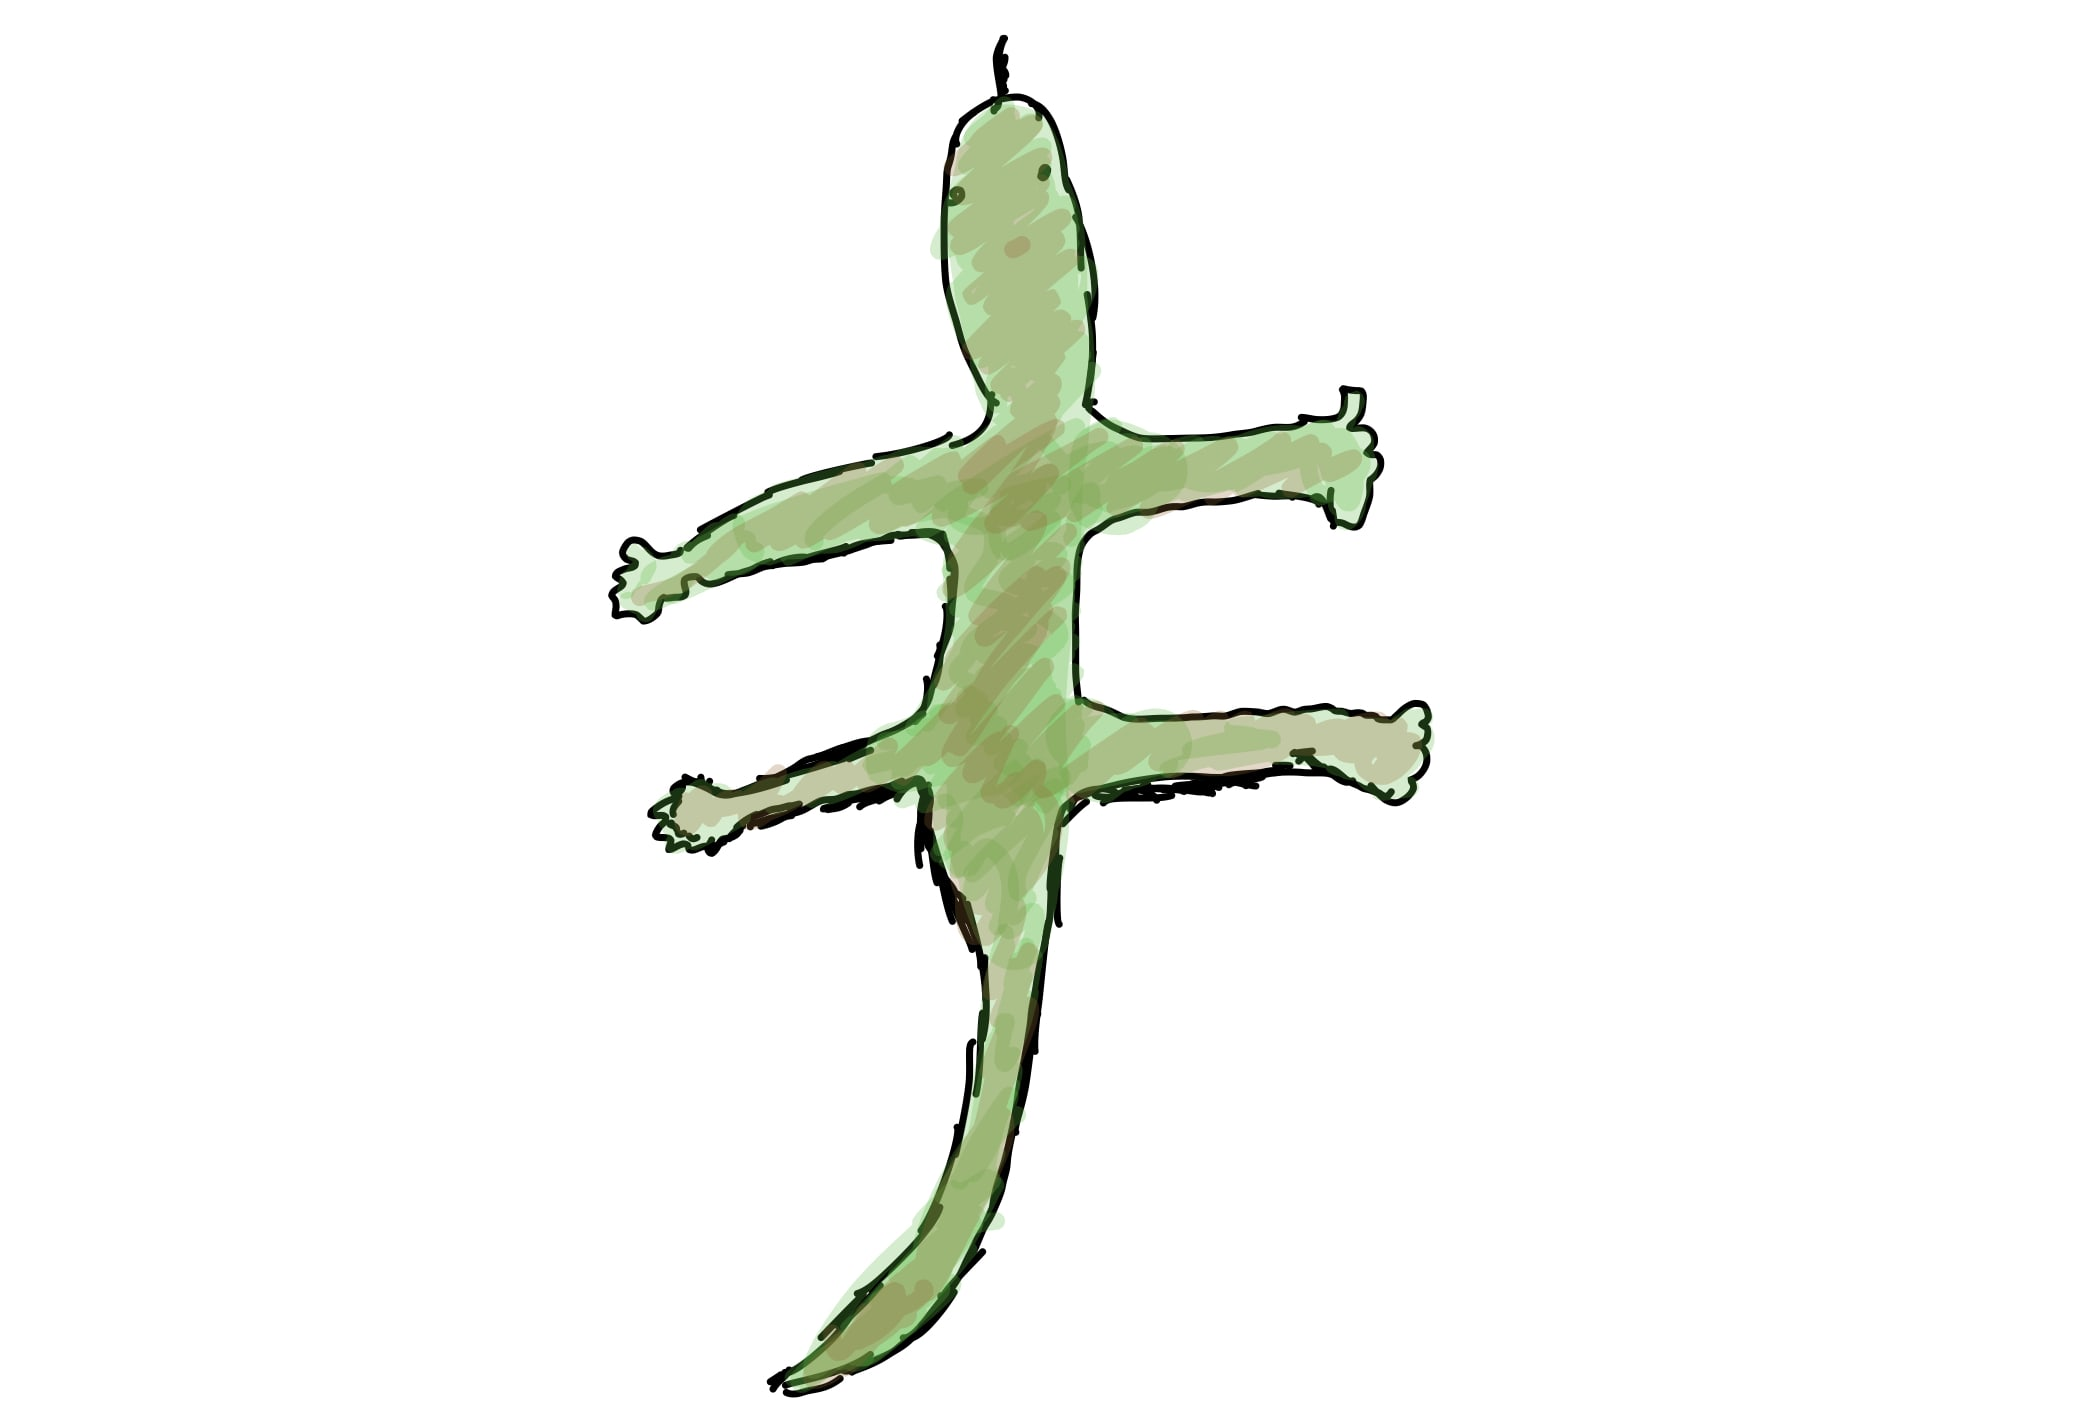 Poorly drawn gecko